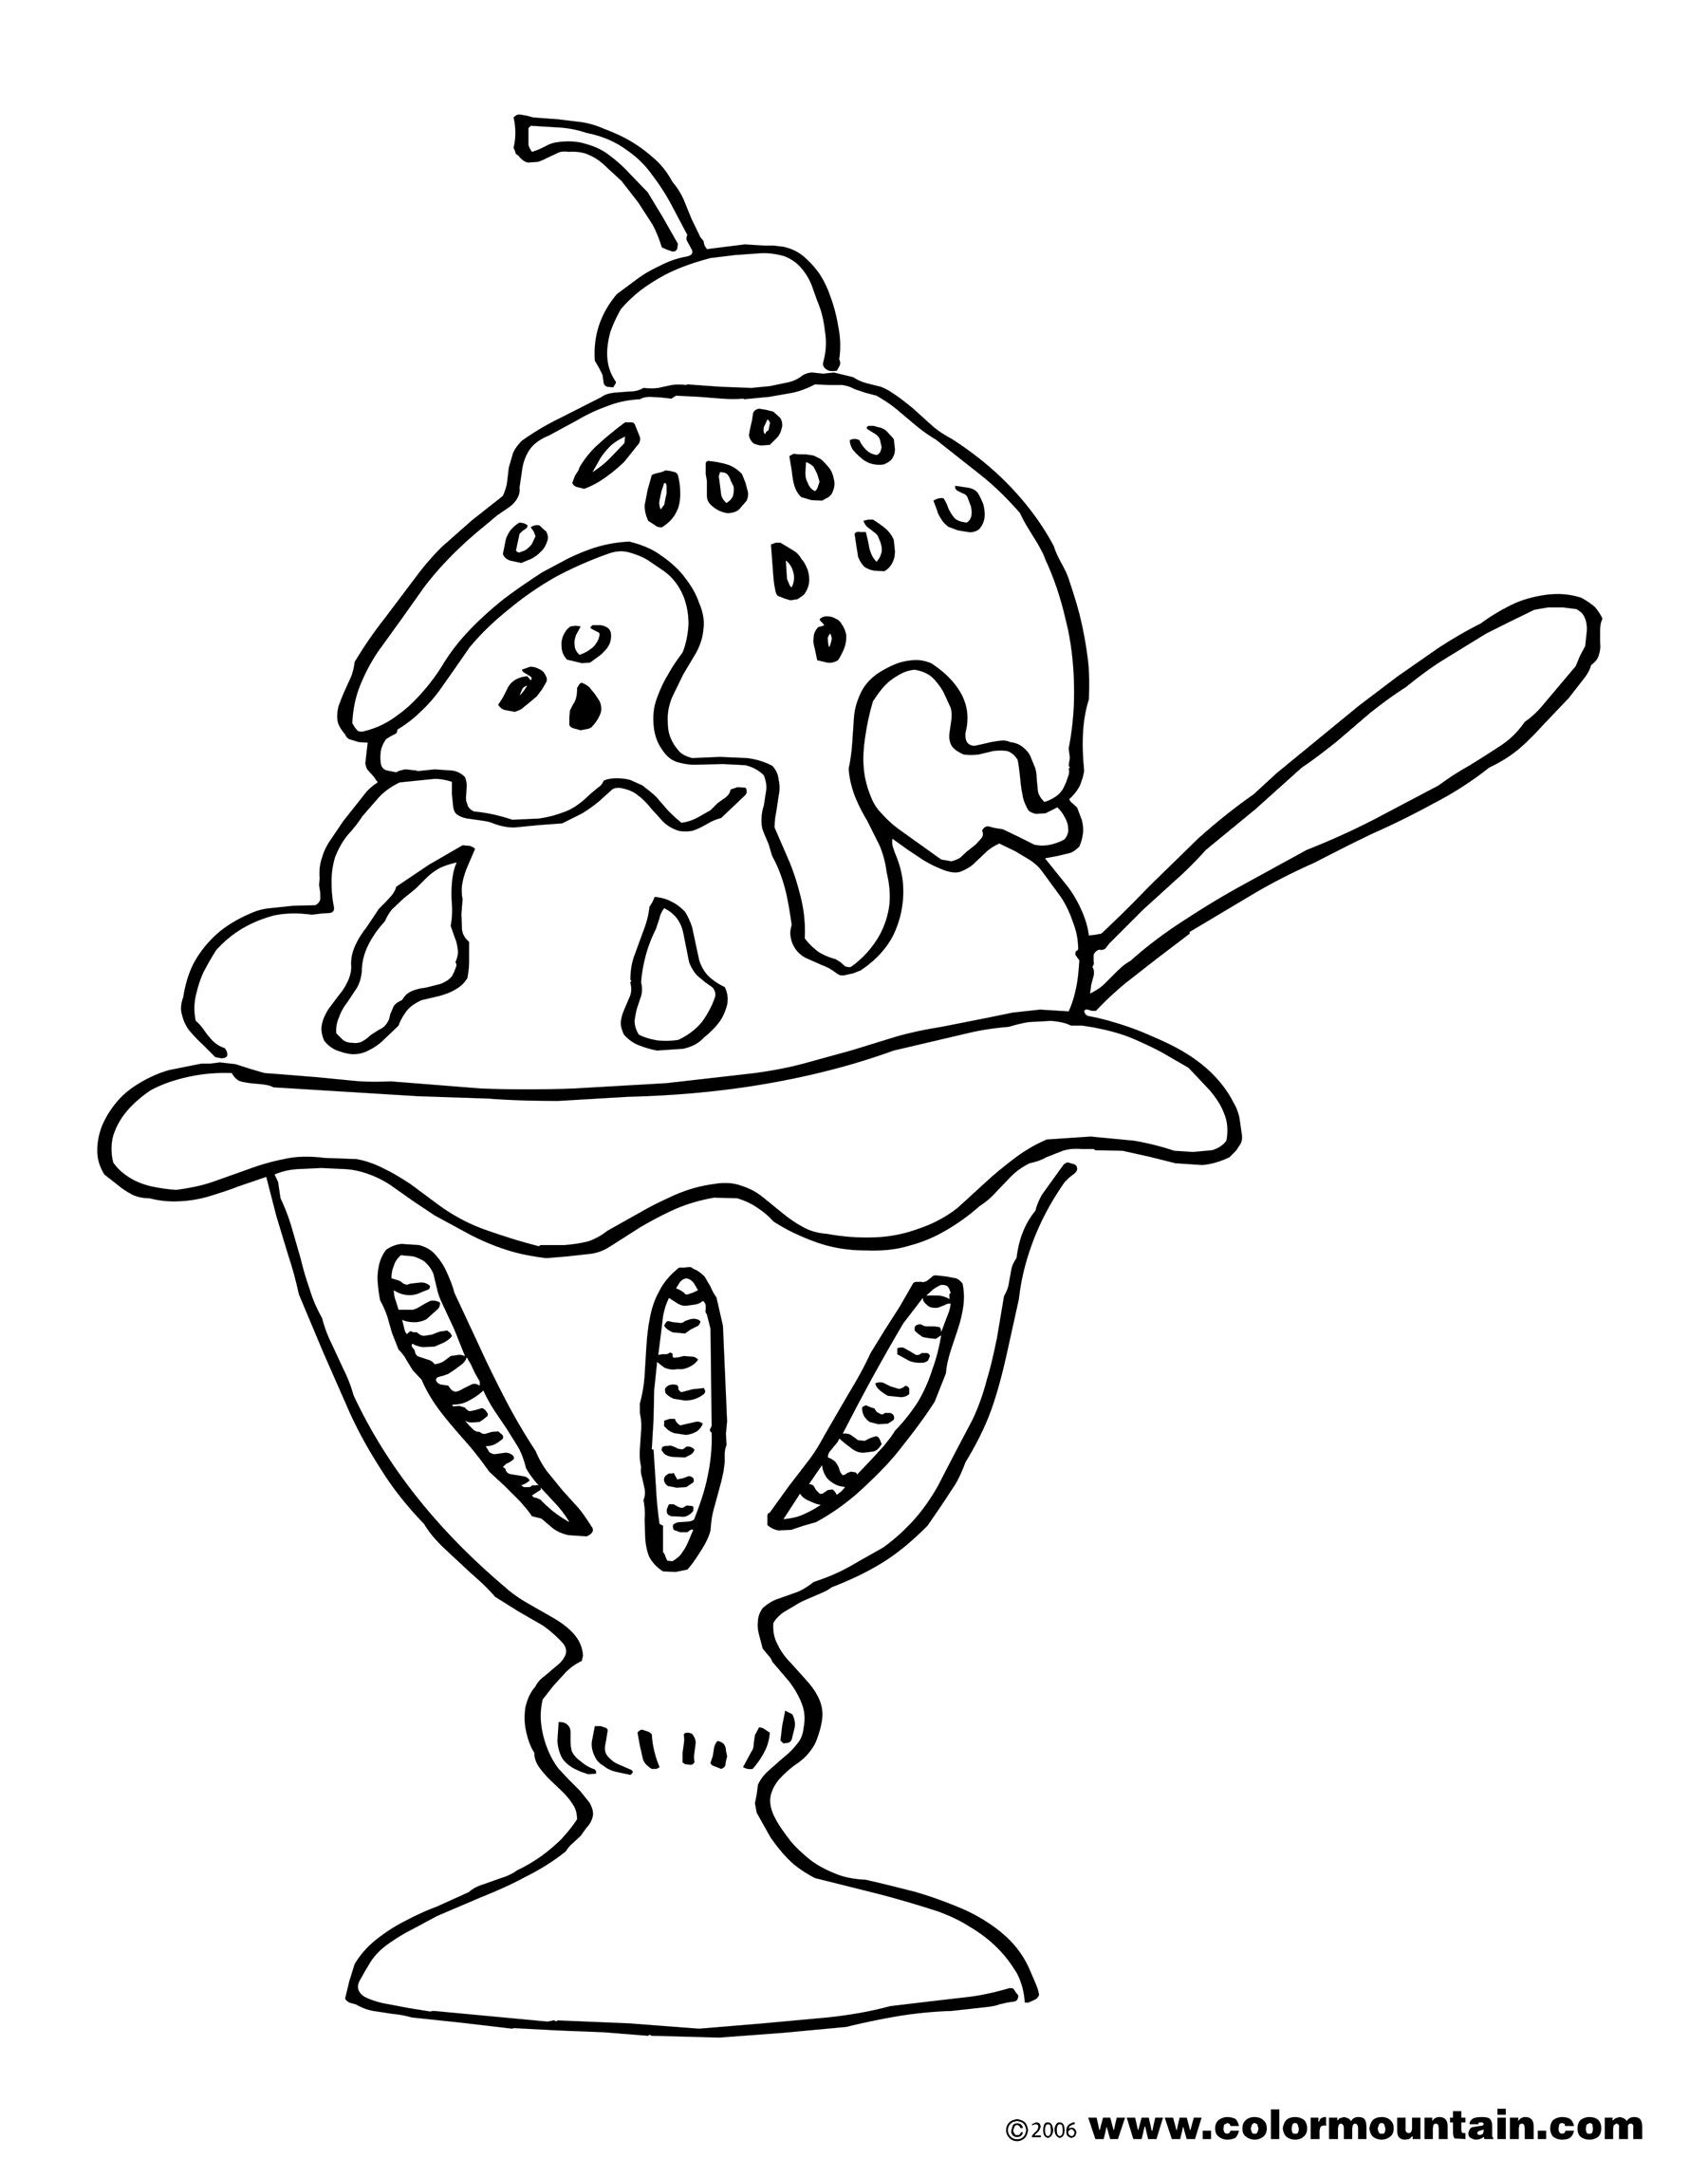 Ice Cream Sundae Coloring Pages Owl Coloring Pages Ice Cream Coloring Pages Puppy Coloring Pages